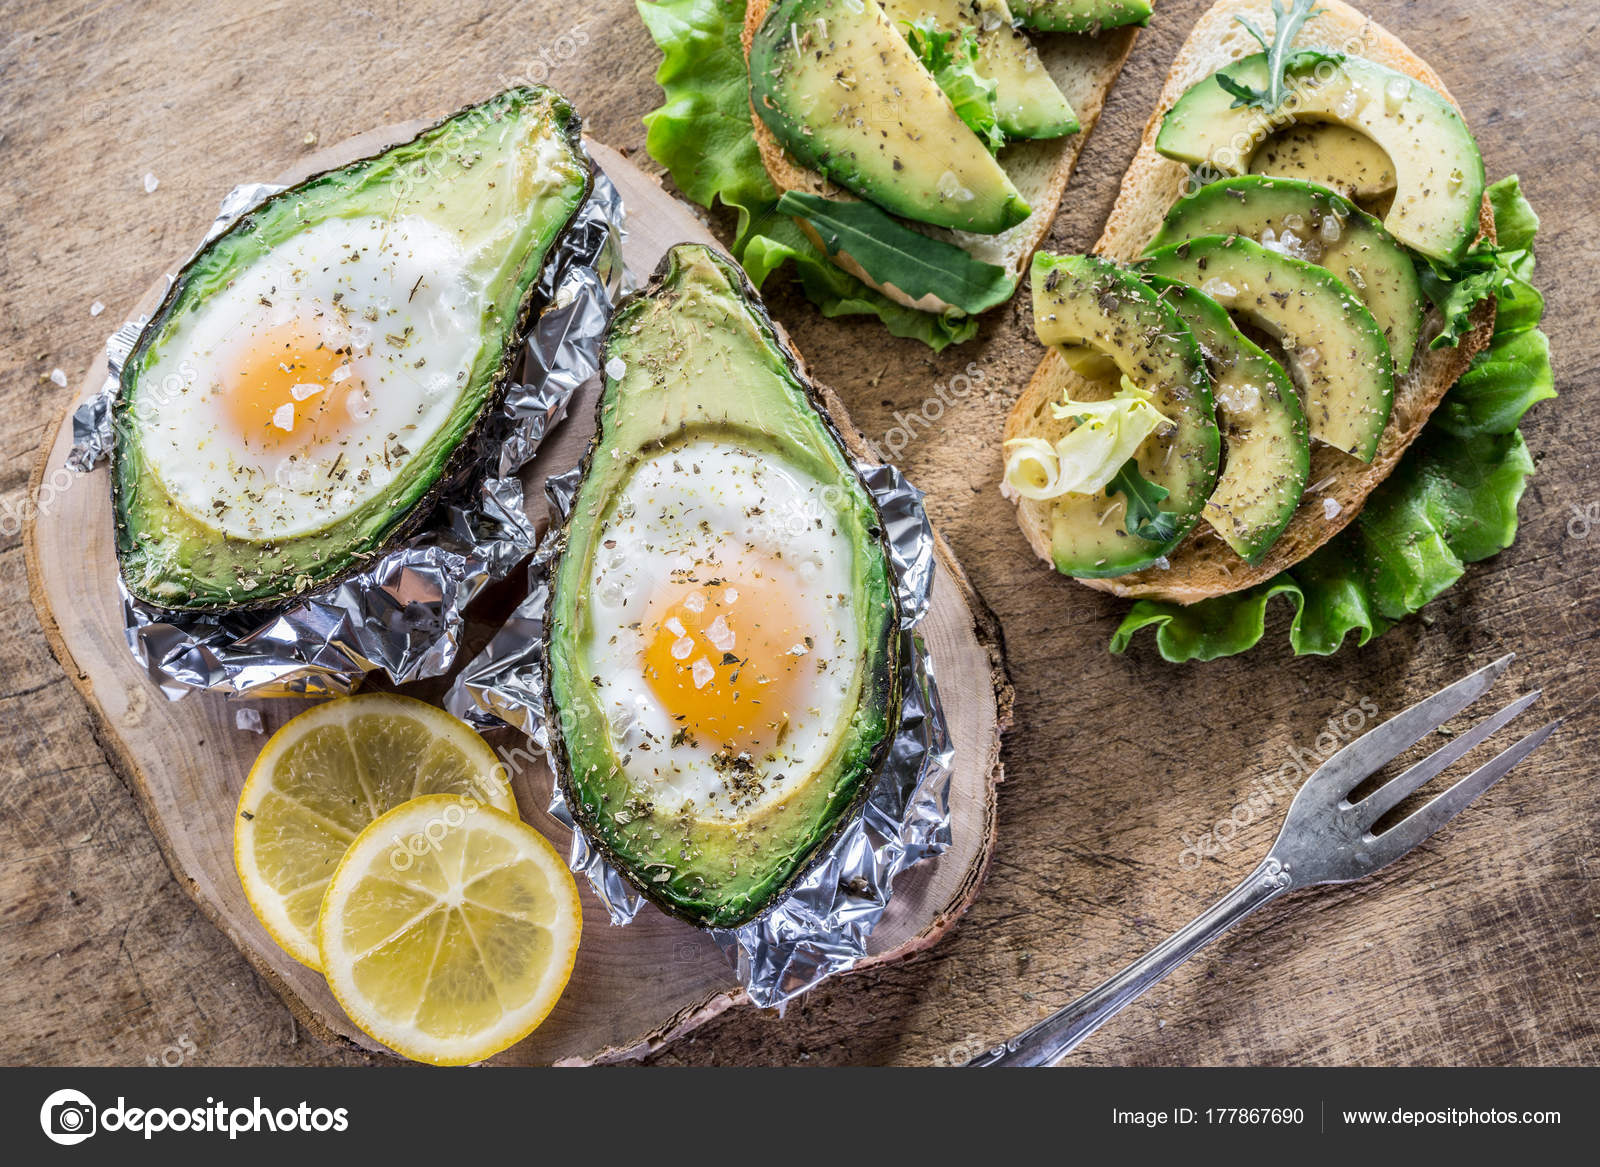 Broodje Avocado Ei Avocado Broodje En Chi Ken Ei Gebakken In Avocado Stockfoto